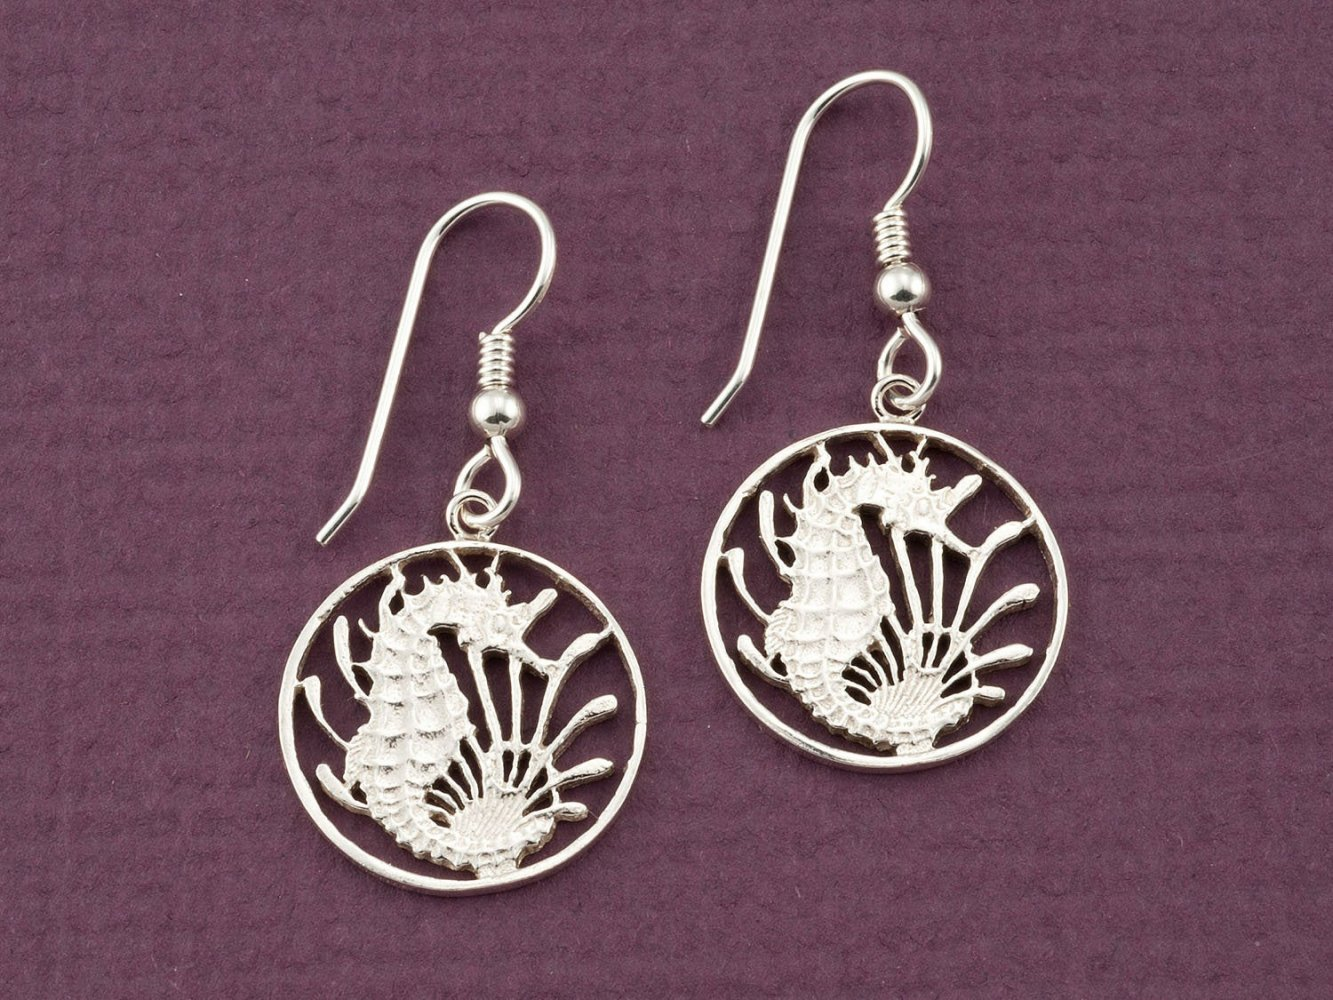 The Difference Silver Sea Horse Earrings Sea Horse Earrings Sea Horse Jewelry Silver Sea Life Earrings Sea Life Jewelry Womans Jewelry 295es